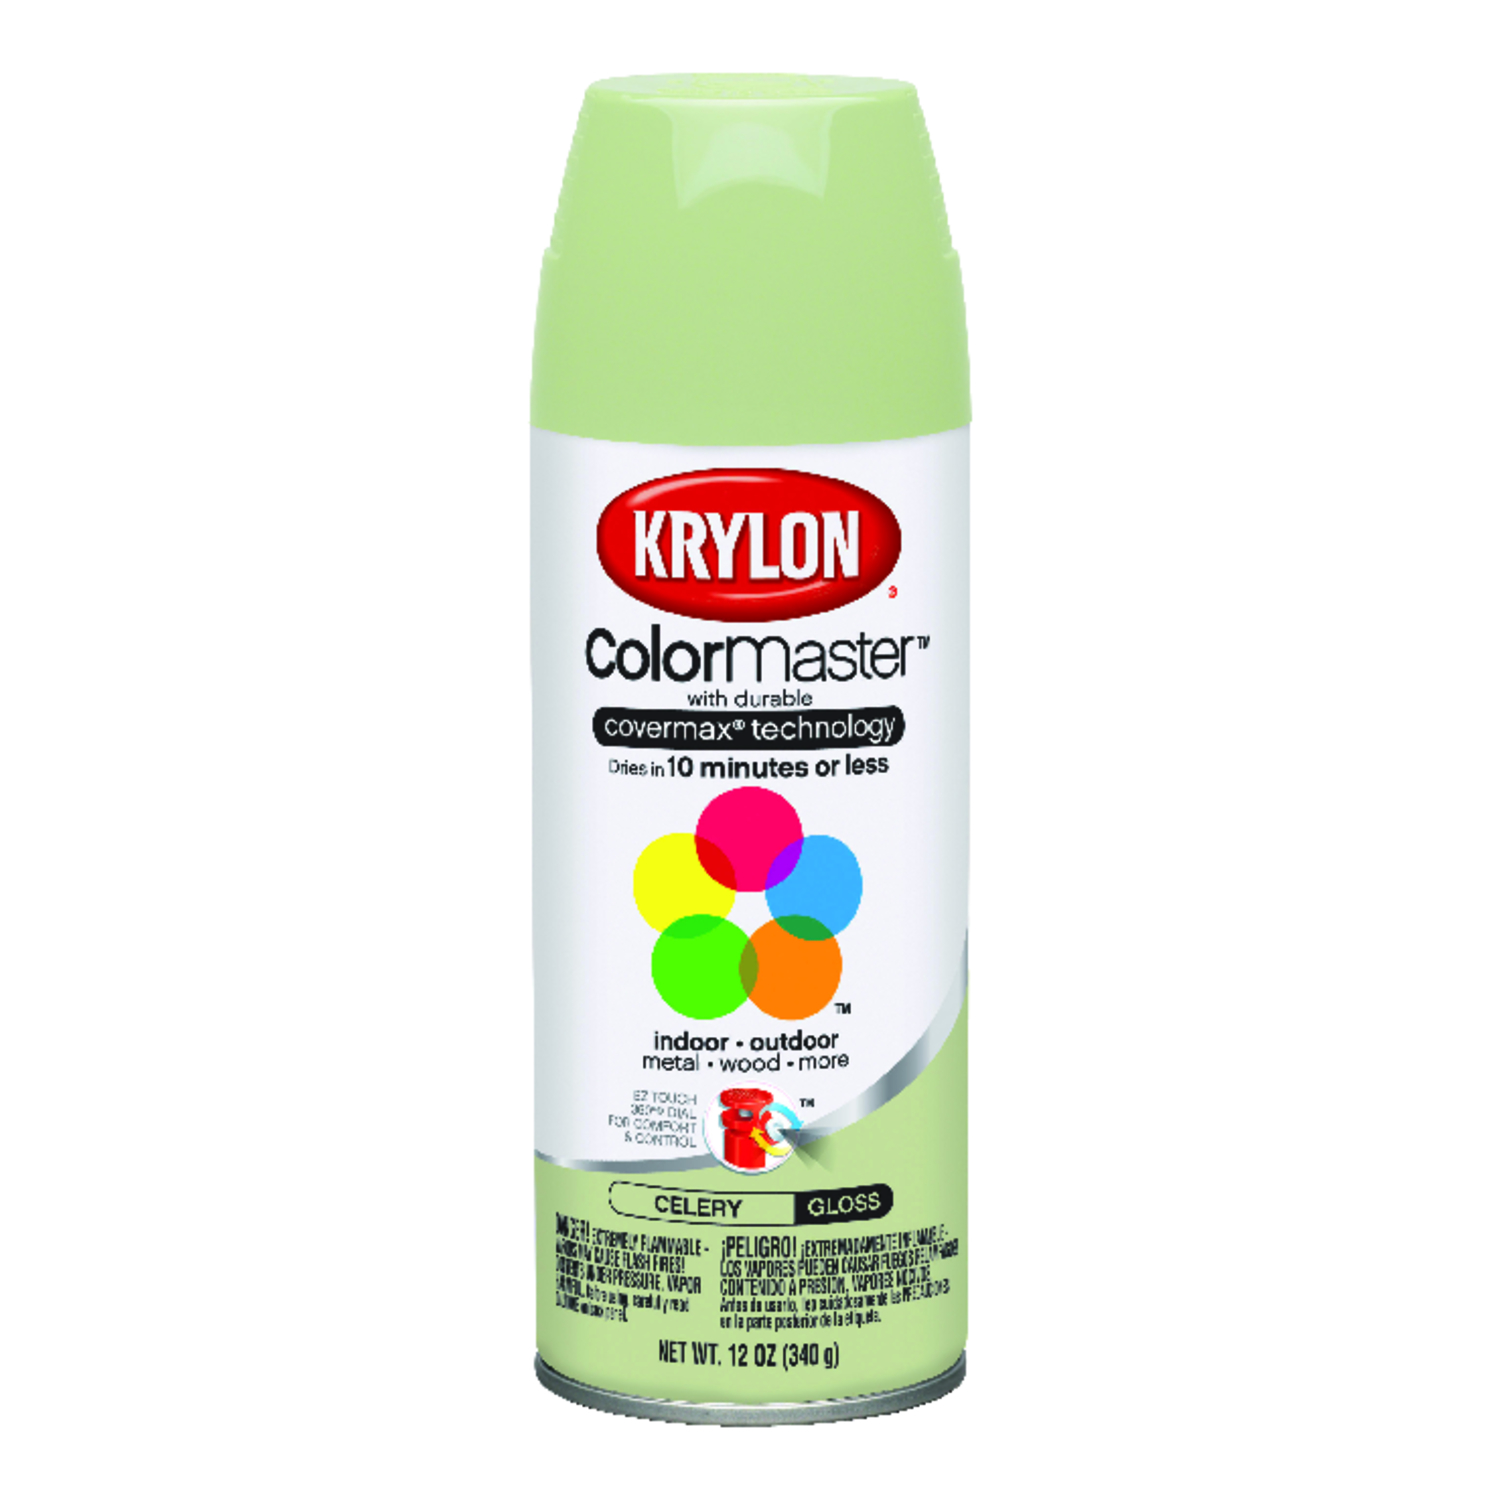 Krylon  ColorMaster  Gloss  Spray Paint  Celery  12 oz.